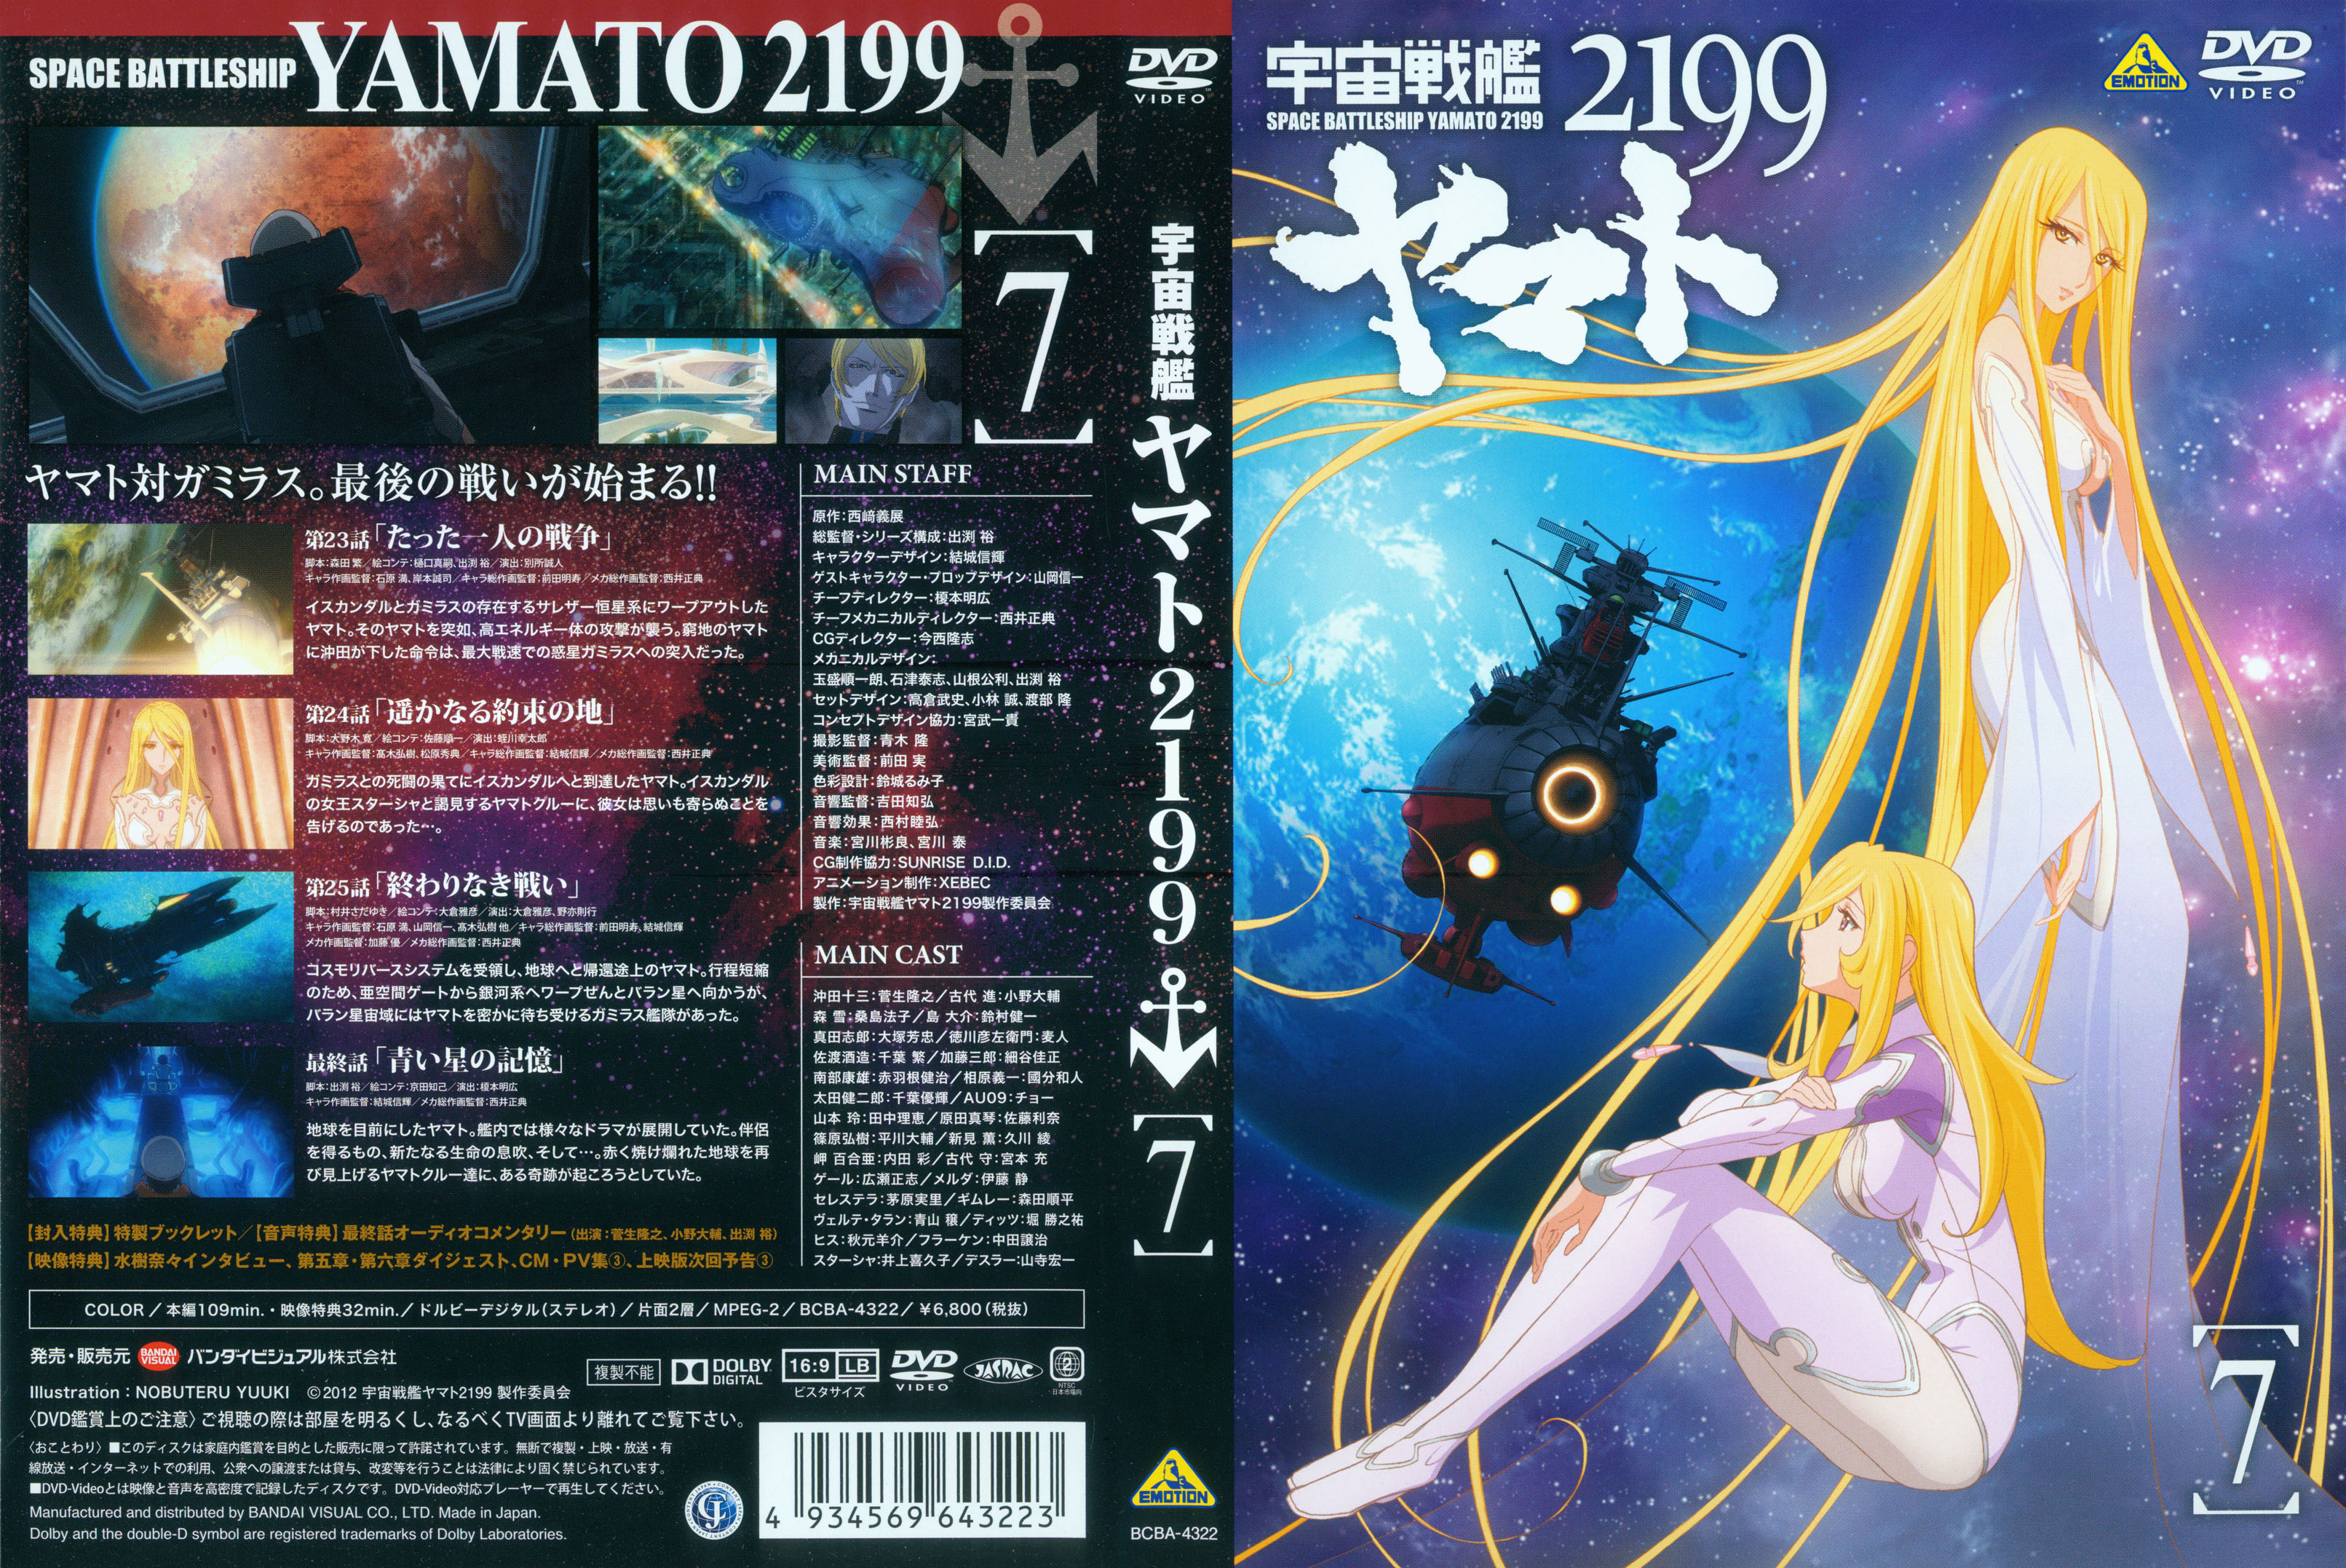 Yamato 2199 Chapter 7 video package